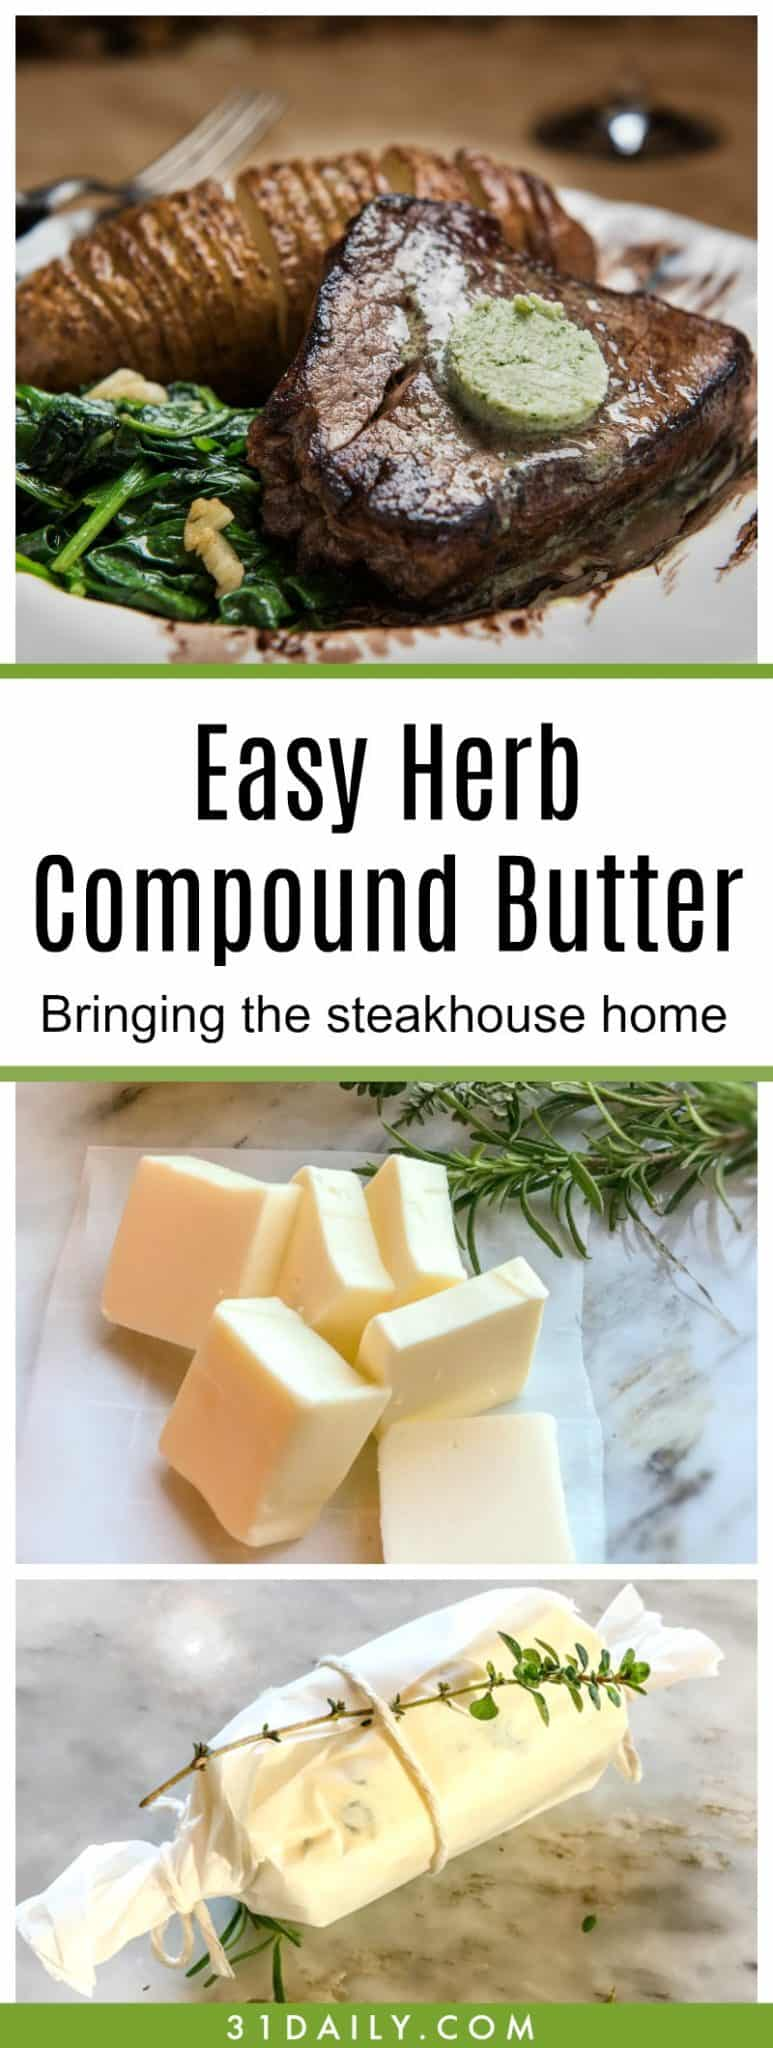 An Herb Compound Butter to Take Your Steak to the Next Level | 31Daily.com